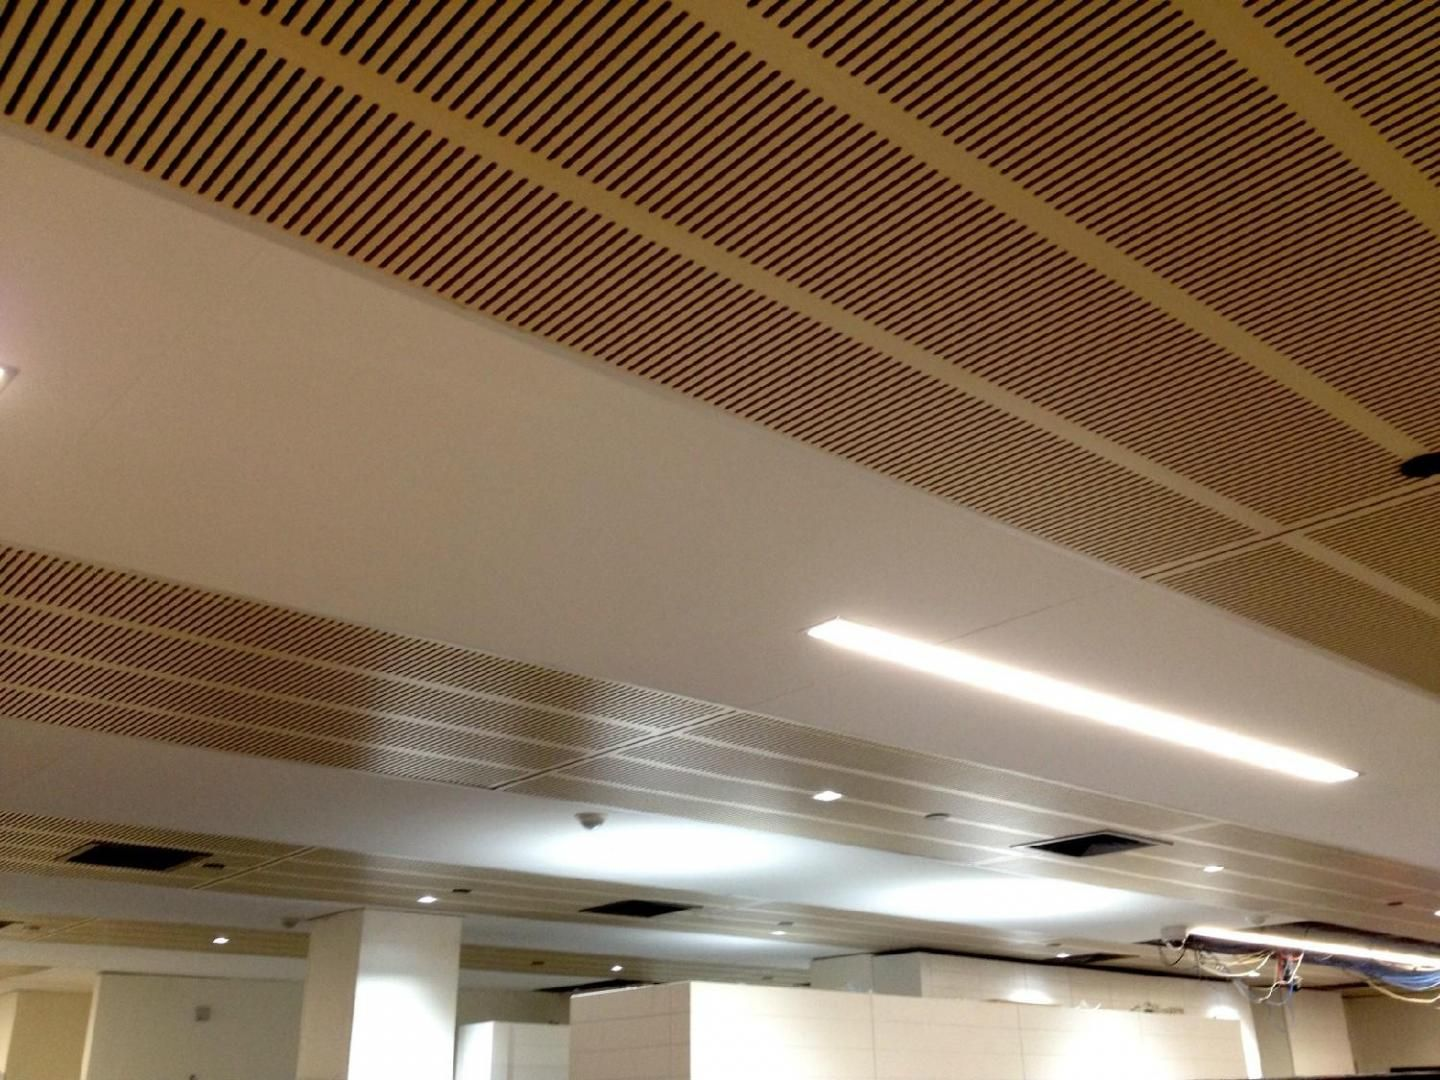 Acoustic ceiling panels victoria melbourne ceilings armstrong acoustic ceiling panels victoria melbourne ceilings armstrong ceiling tiles commercial tullamarine dandenong dailygadgetfo Image collections